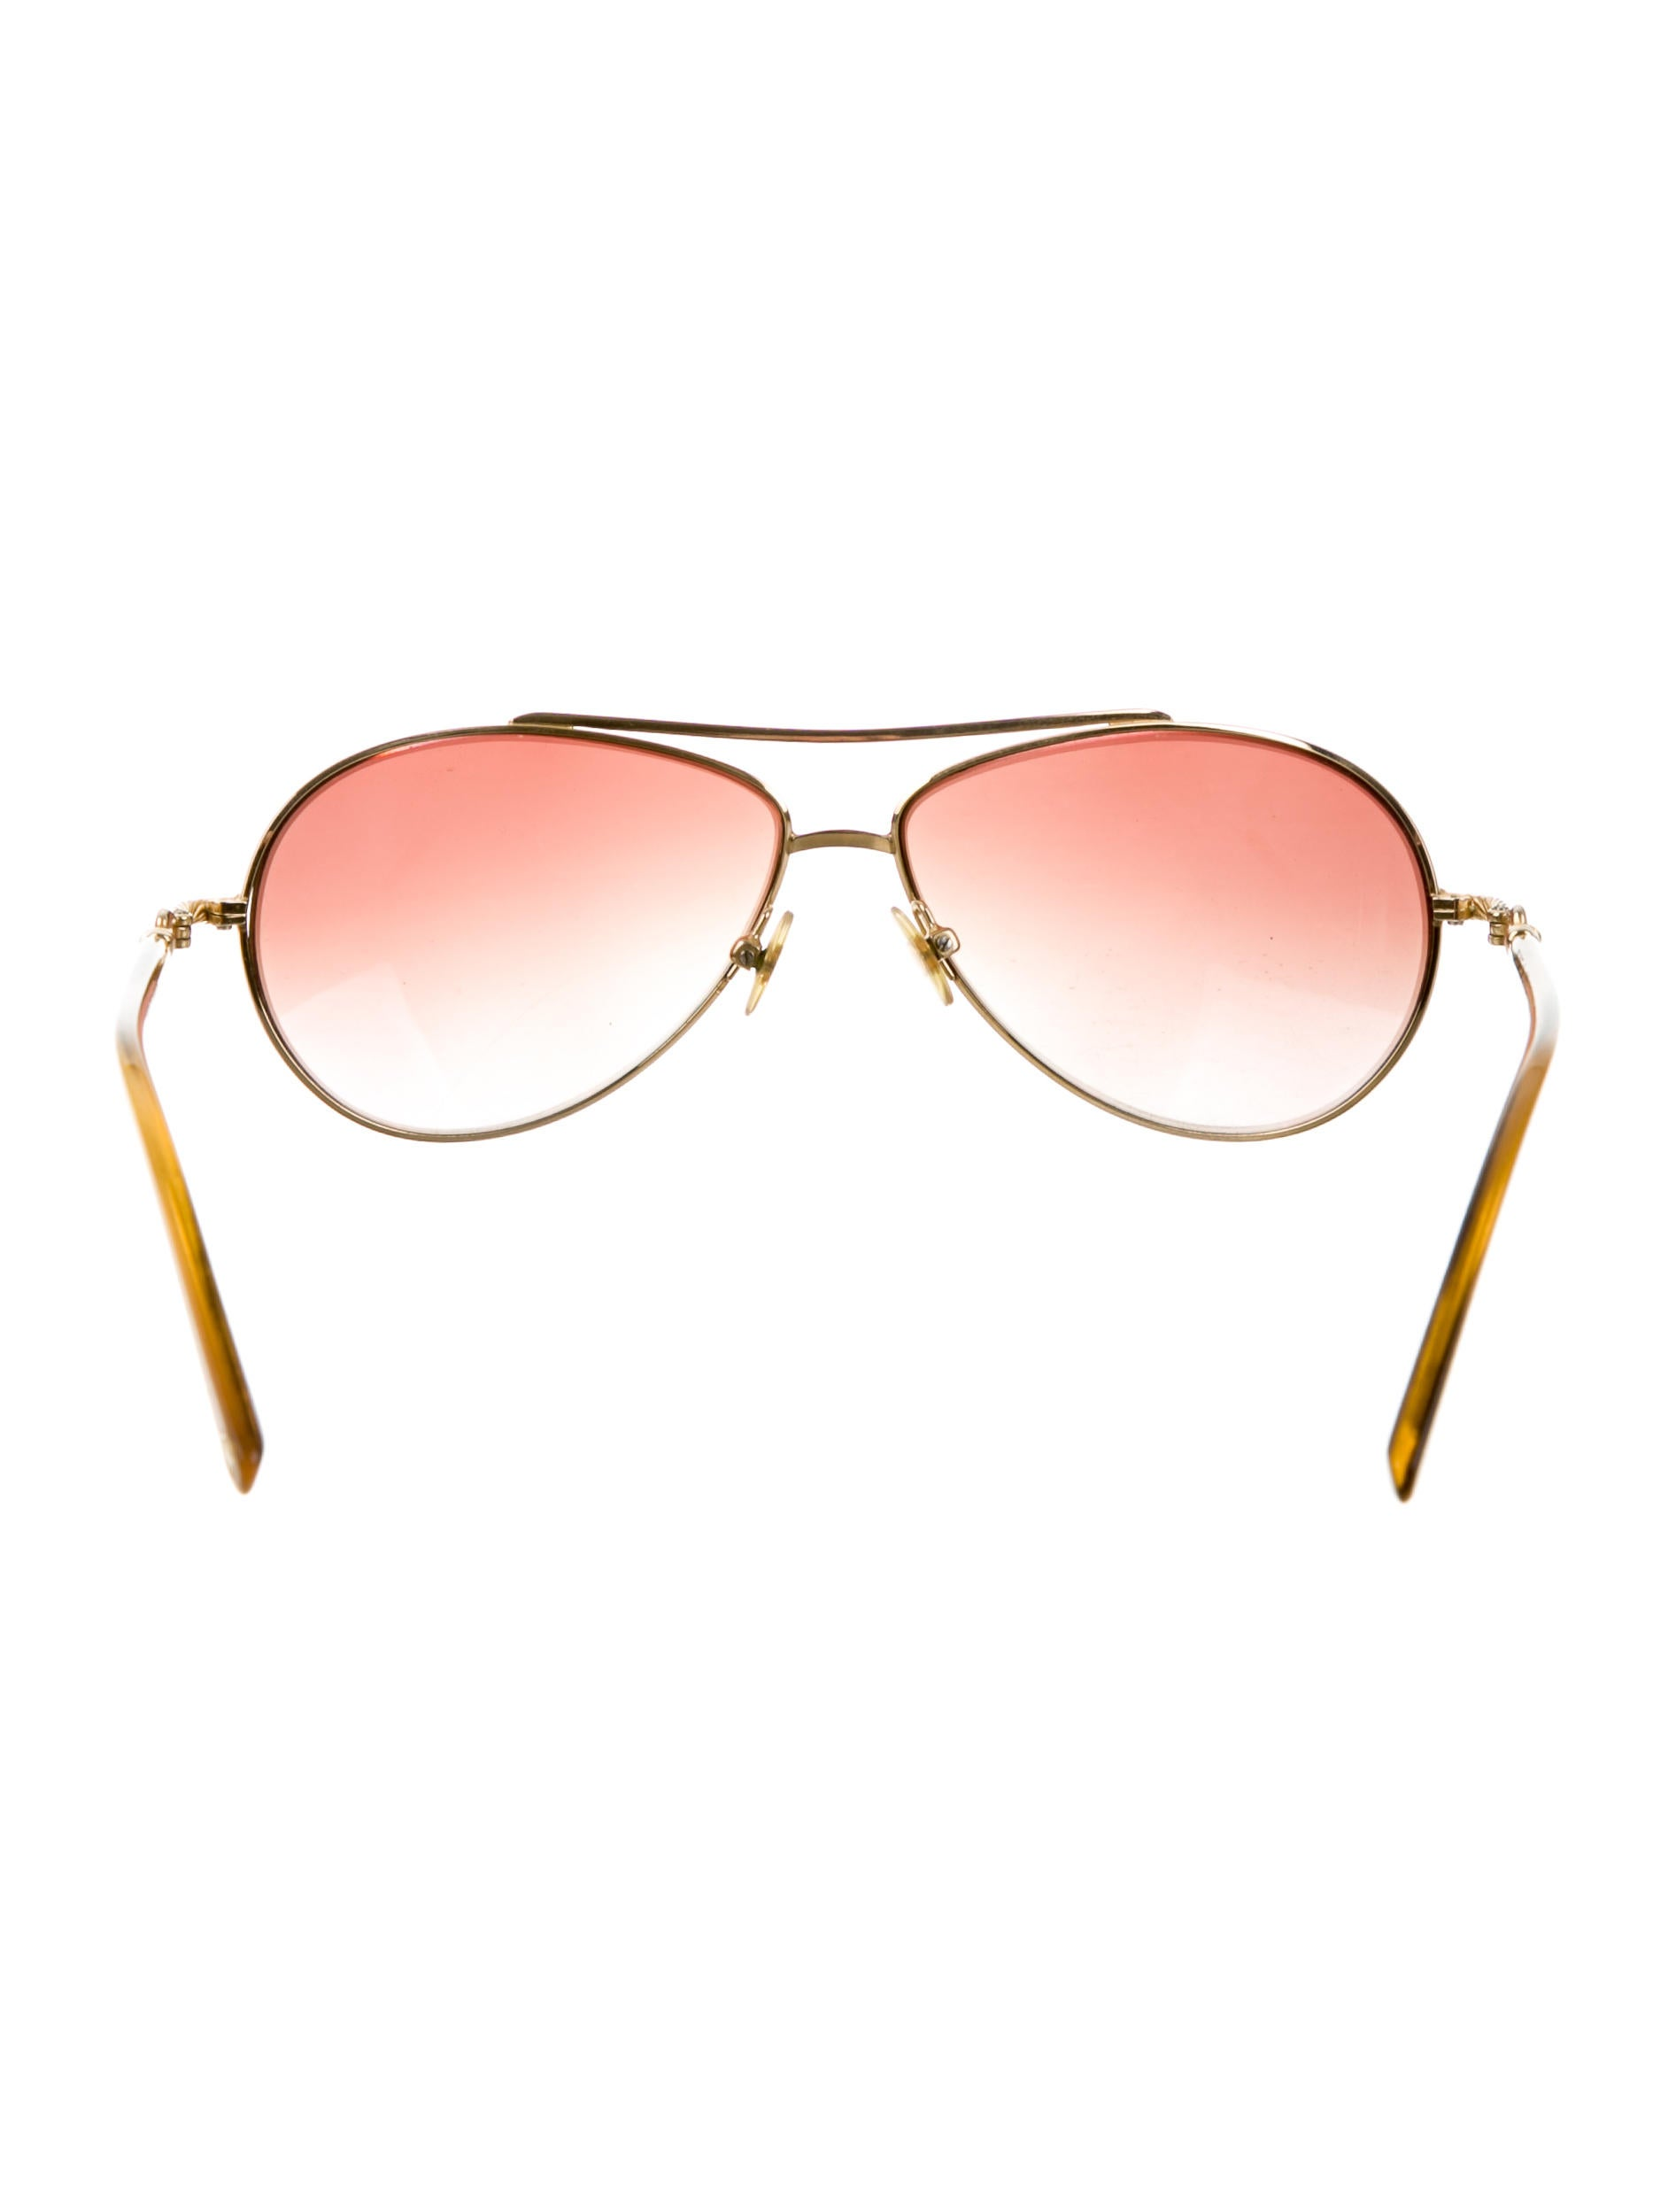 3ade511359d David Yurman Exotics Aviator Sunglasses